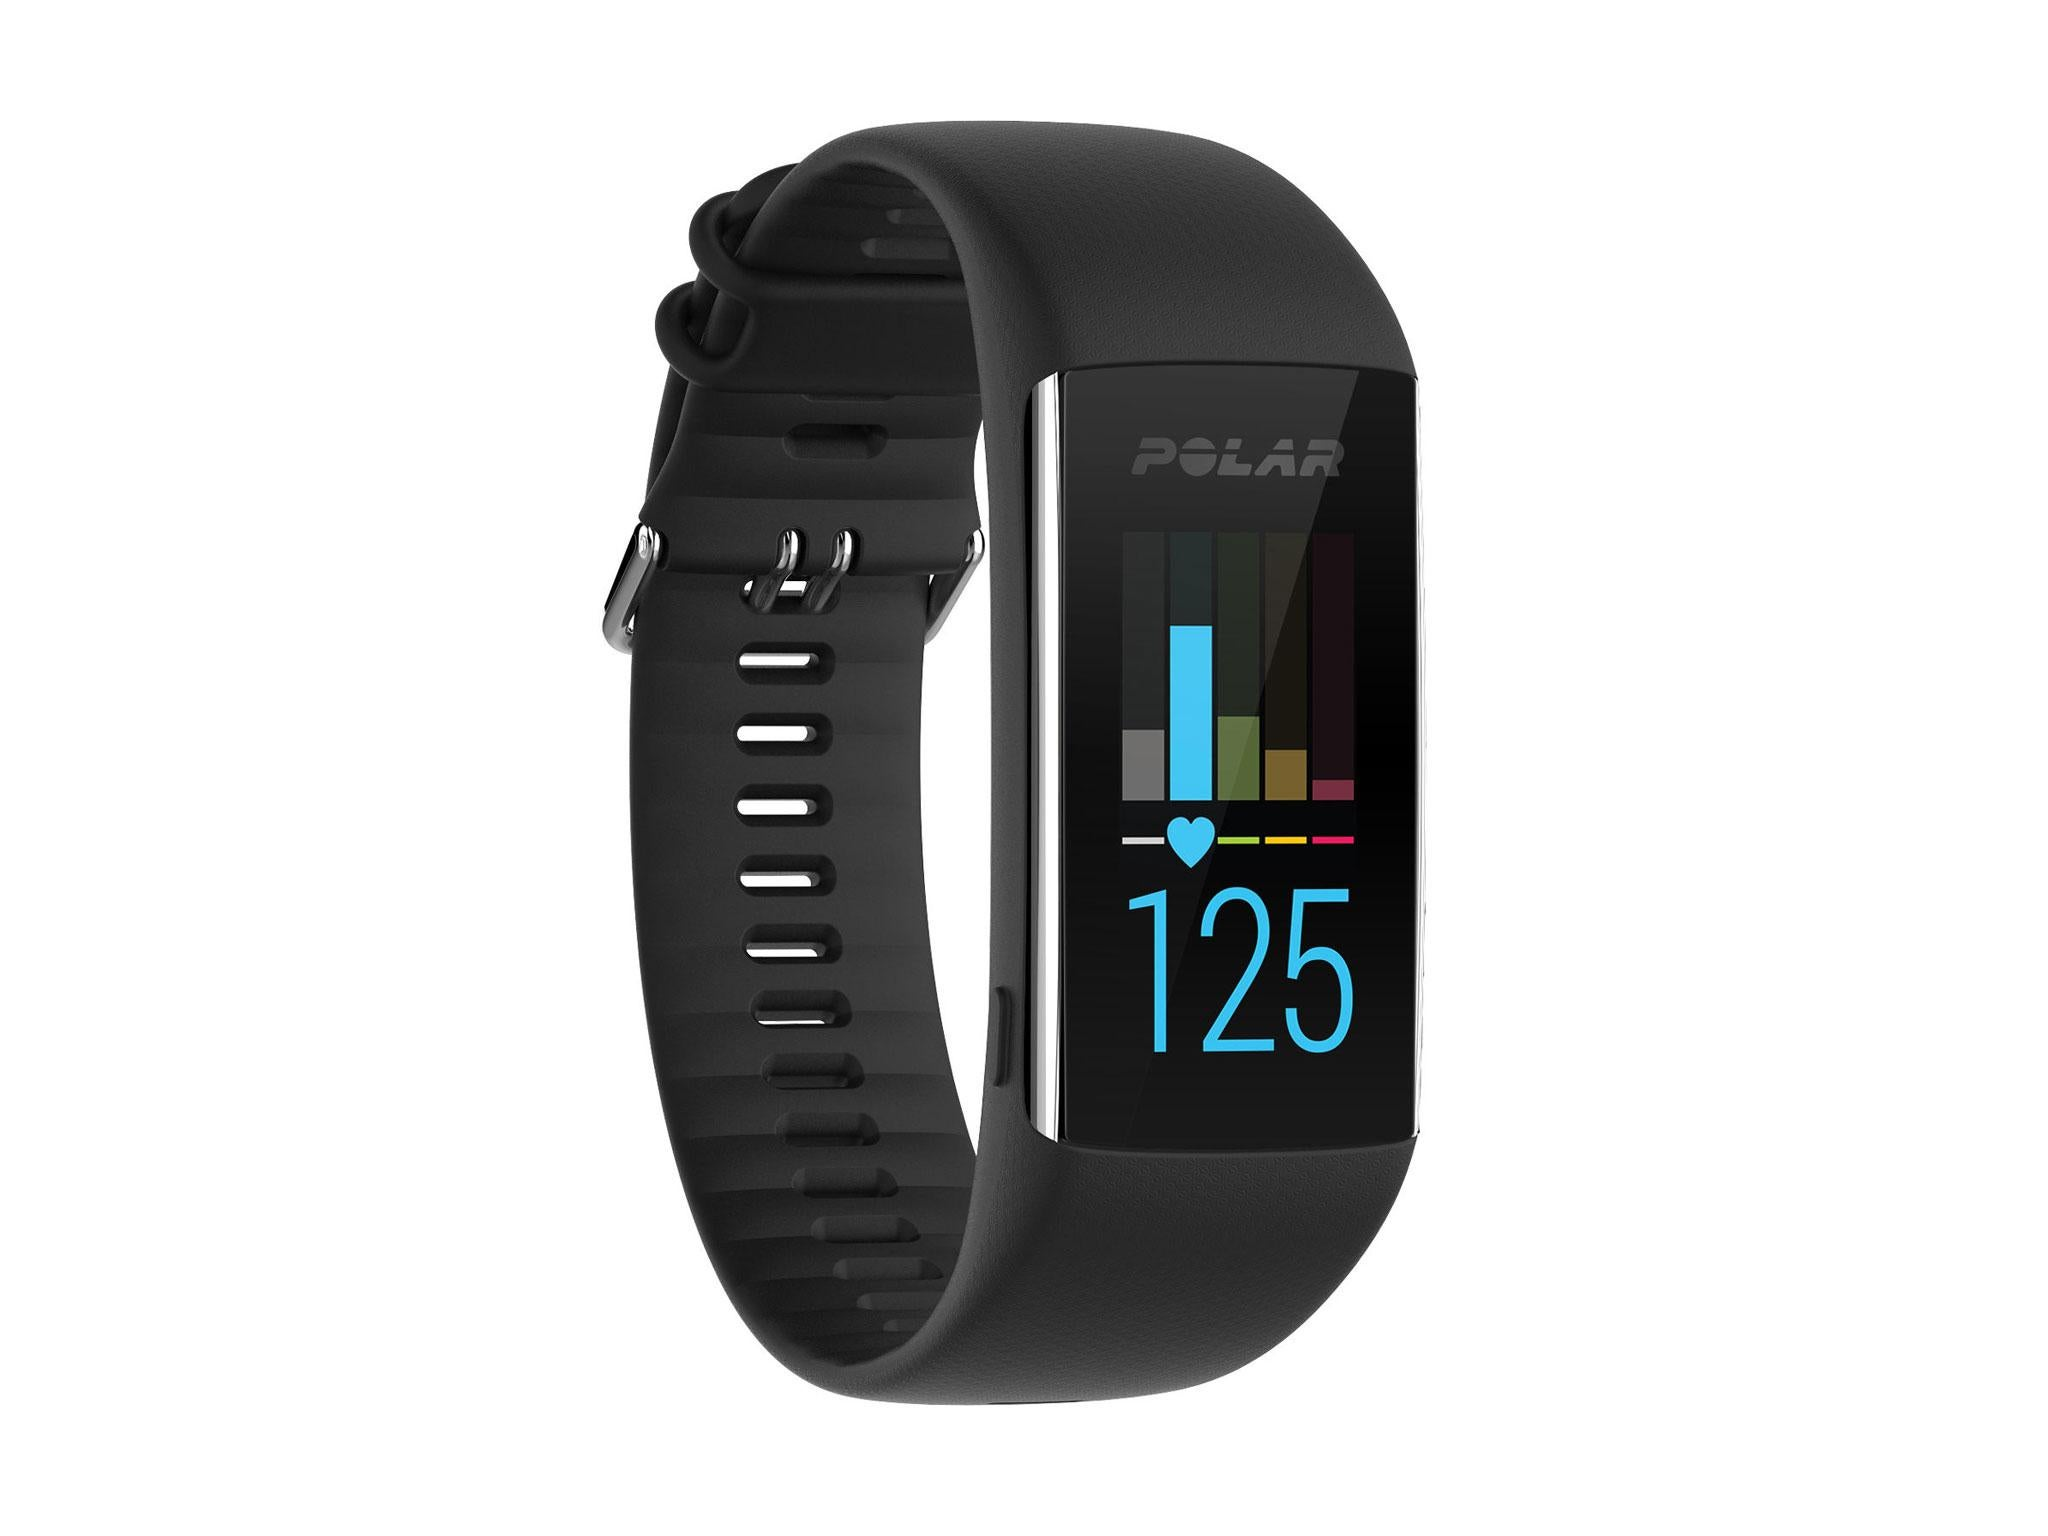 10 Best Fitness Trackers The Independent Couk O View Topic Led Stair Lights Require Wiring In Series Polar A370 Is Aesthetically Pleasing With A Large Full Colour Display Screen And Soft Interchangeable Watch Buckle Style Strap